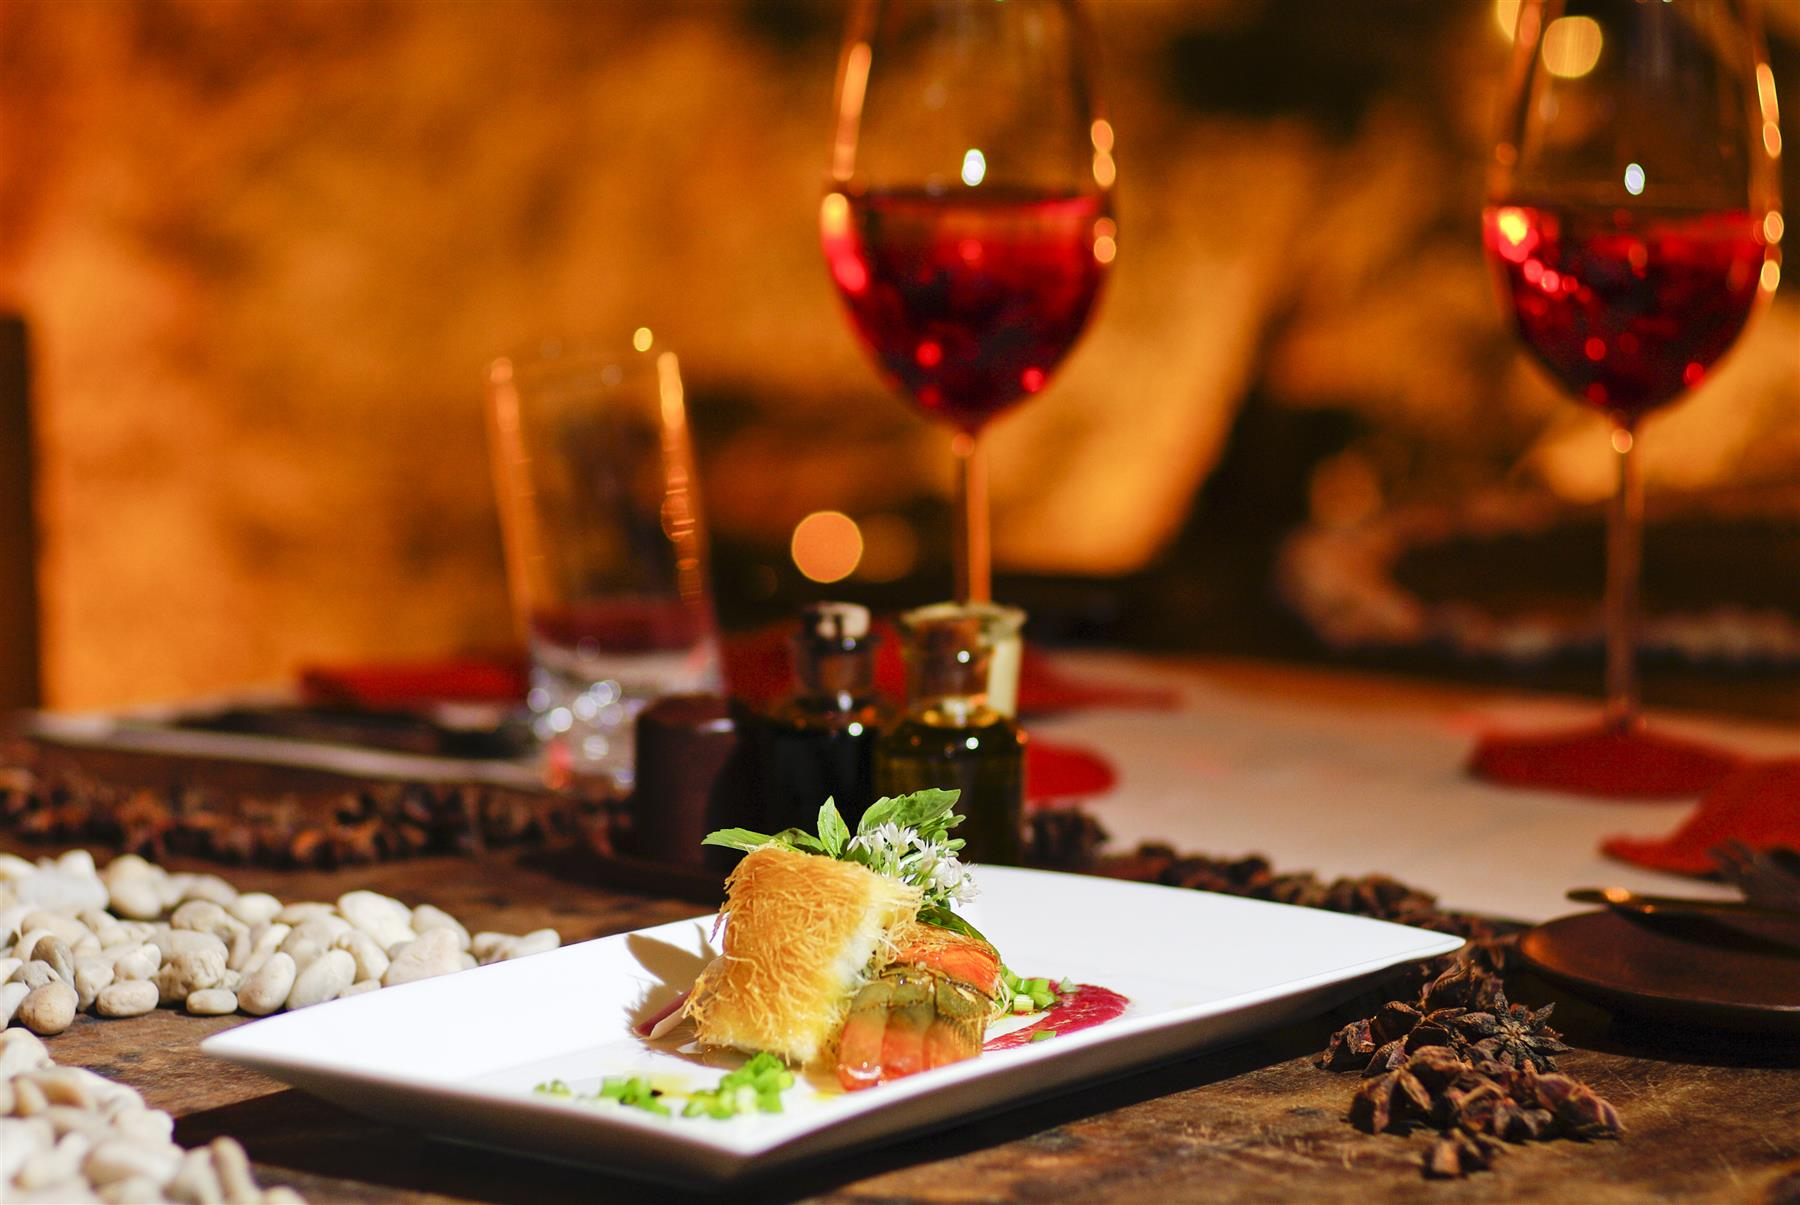 Plate of food and wine